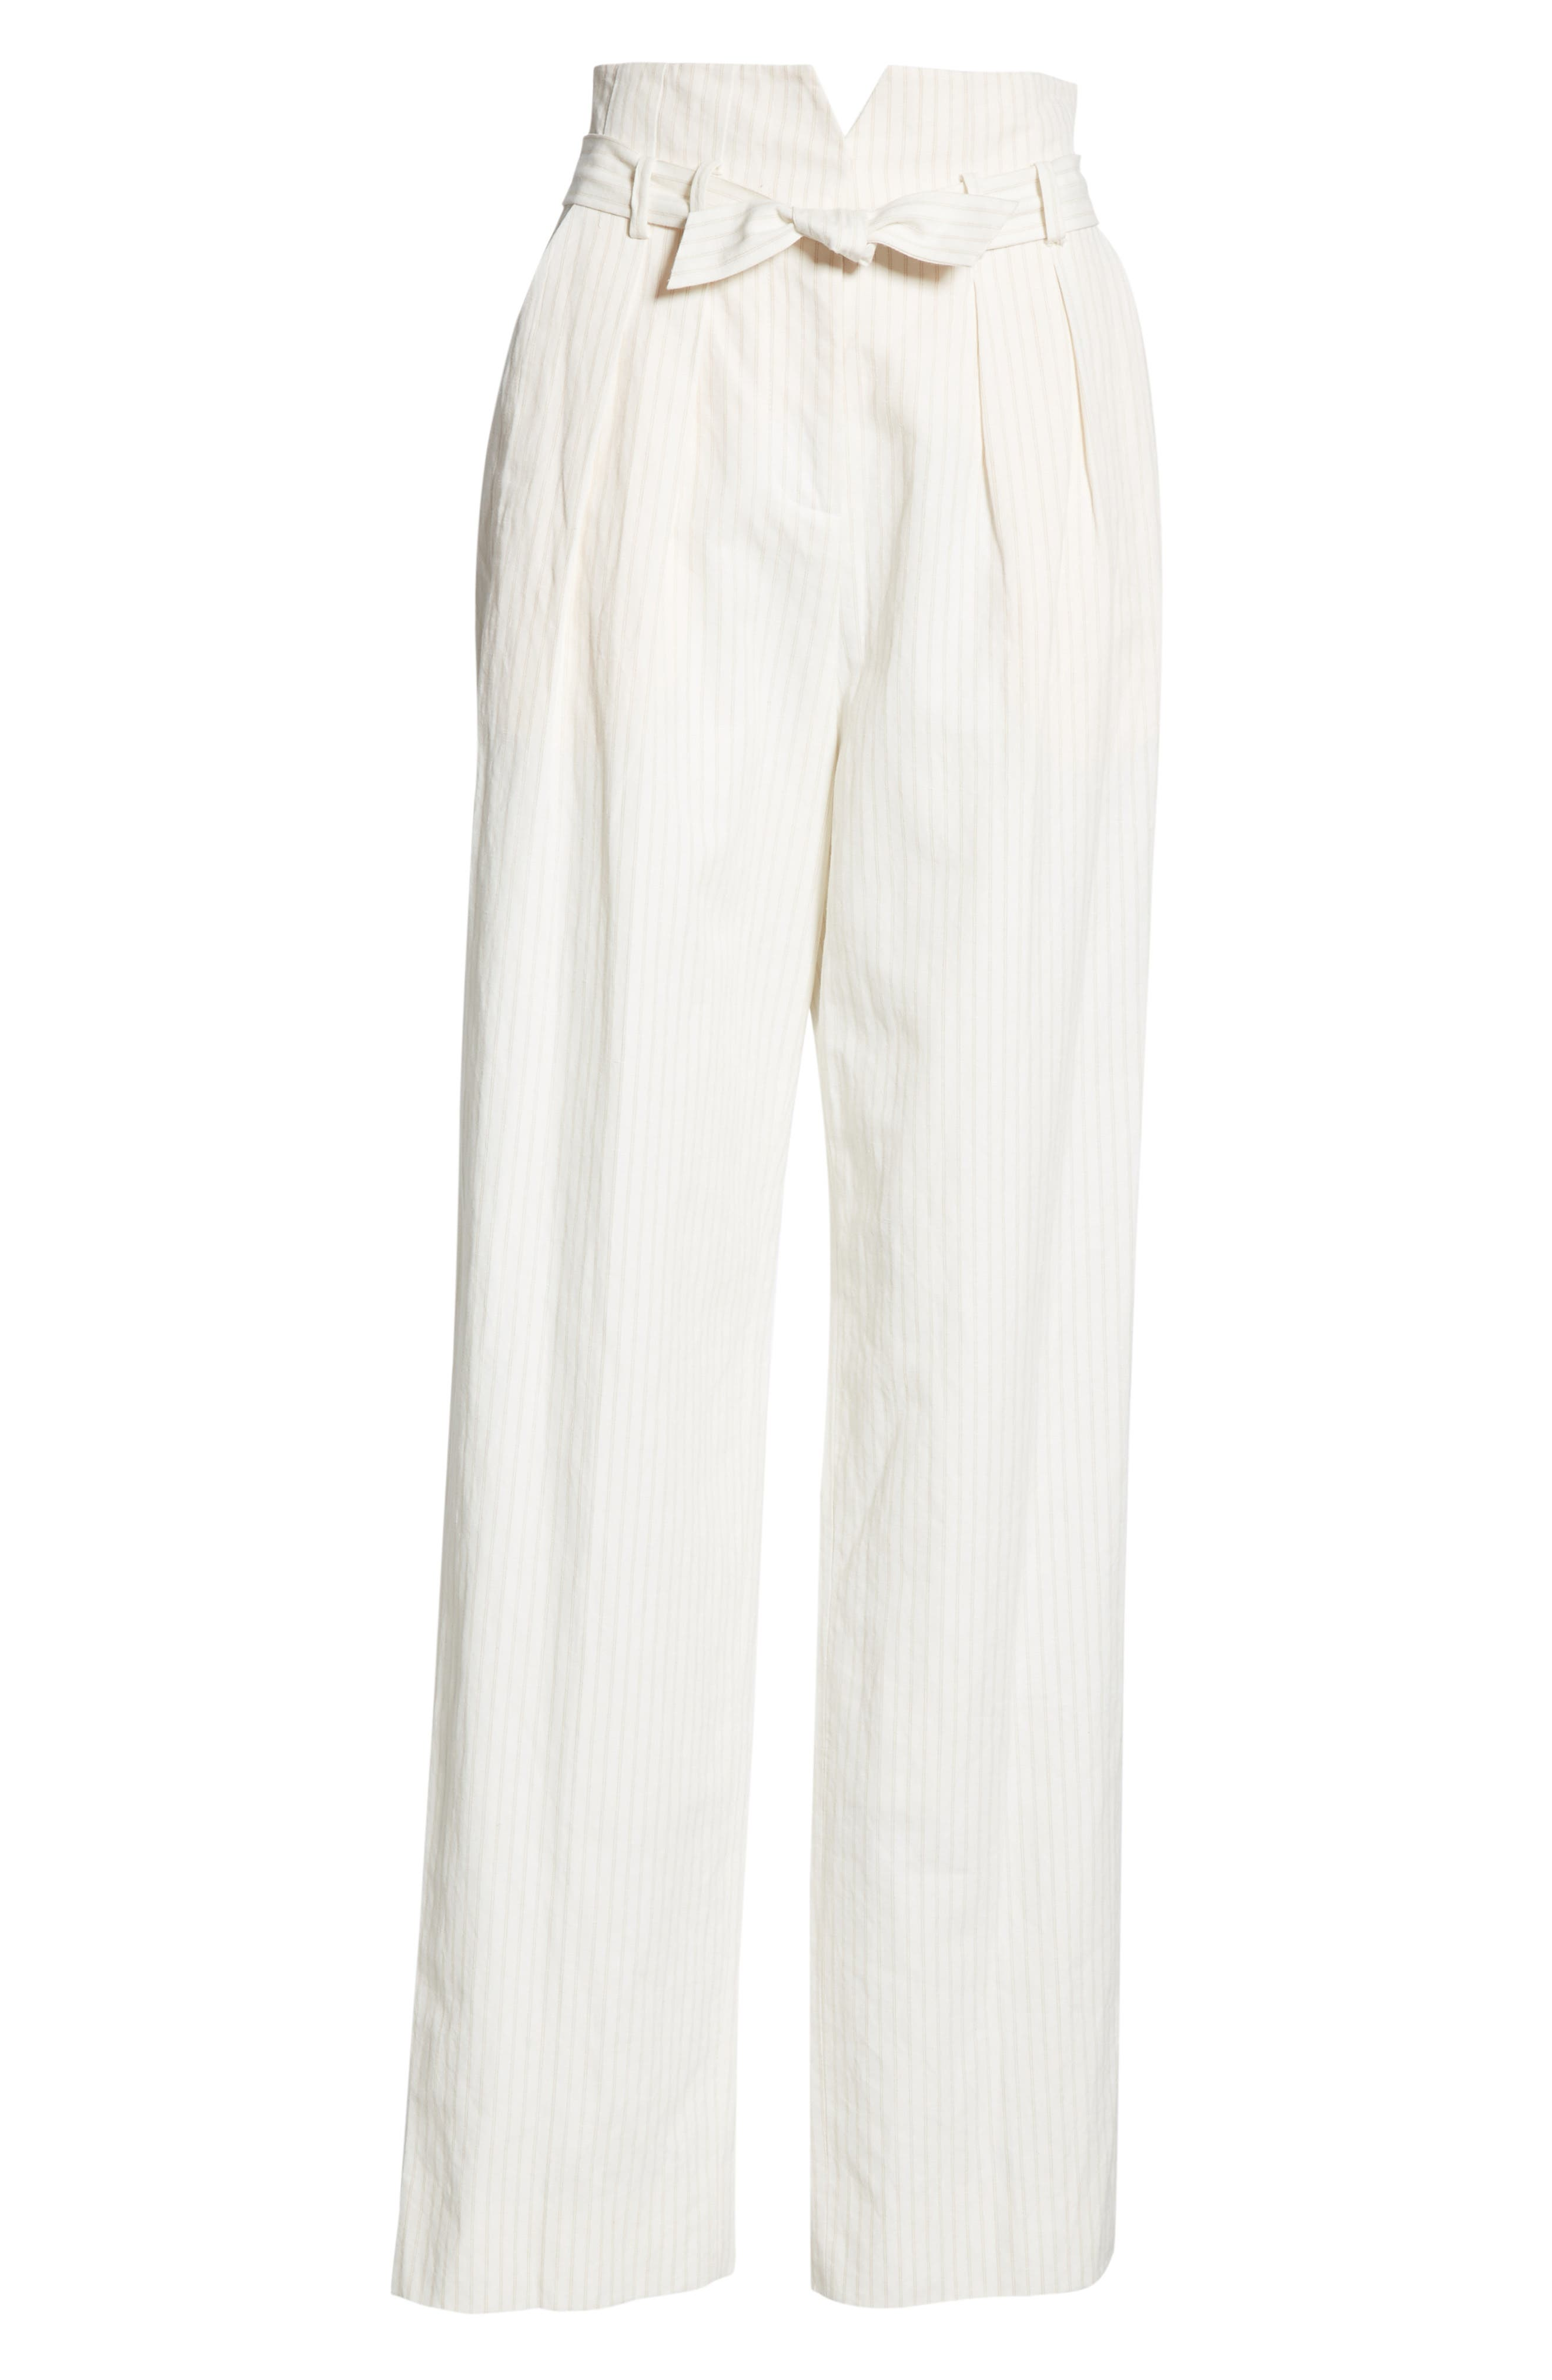 REBECCA TAYLOR, Pinstripe Belted Wide Leg Pants, Alternate thumbnail 7, color, SNOW COMBO